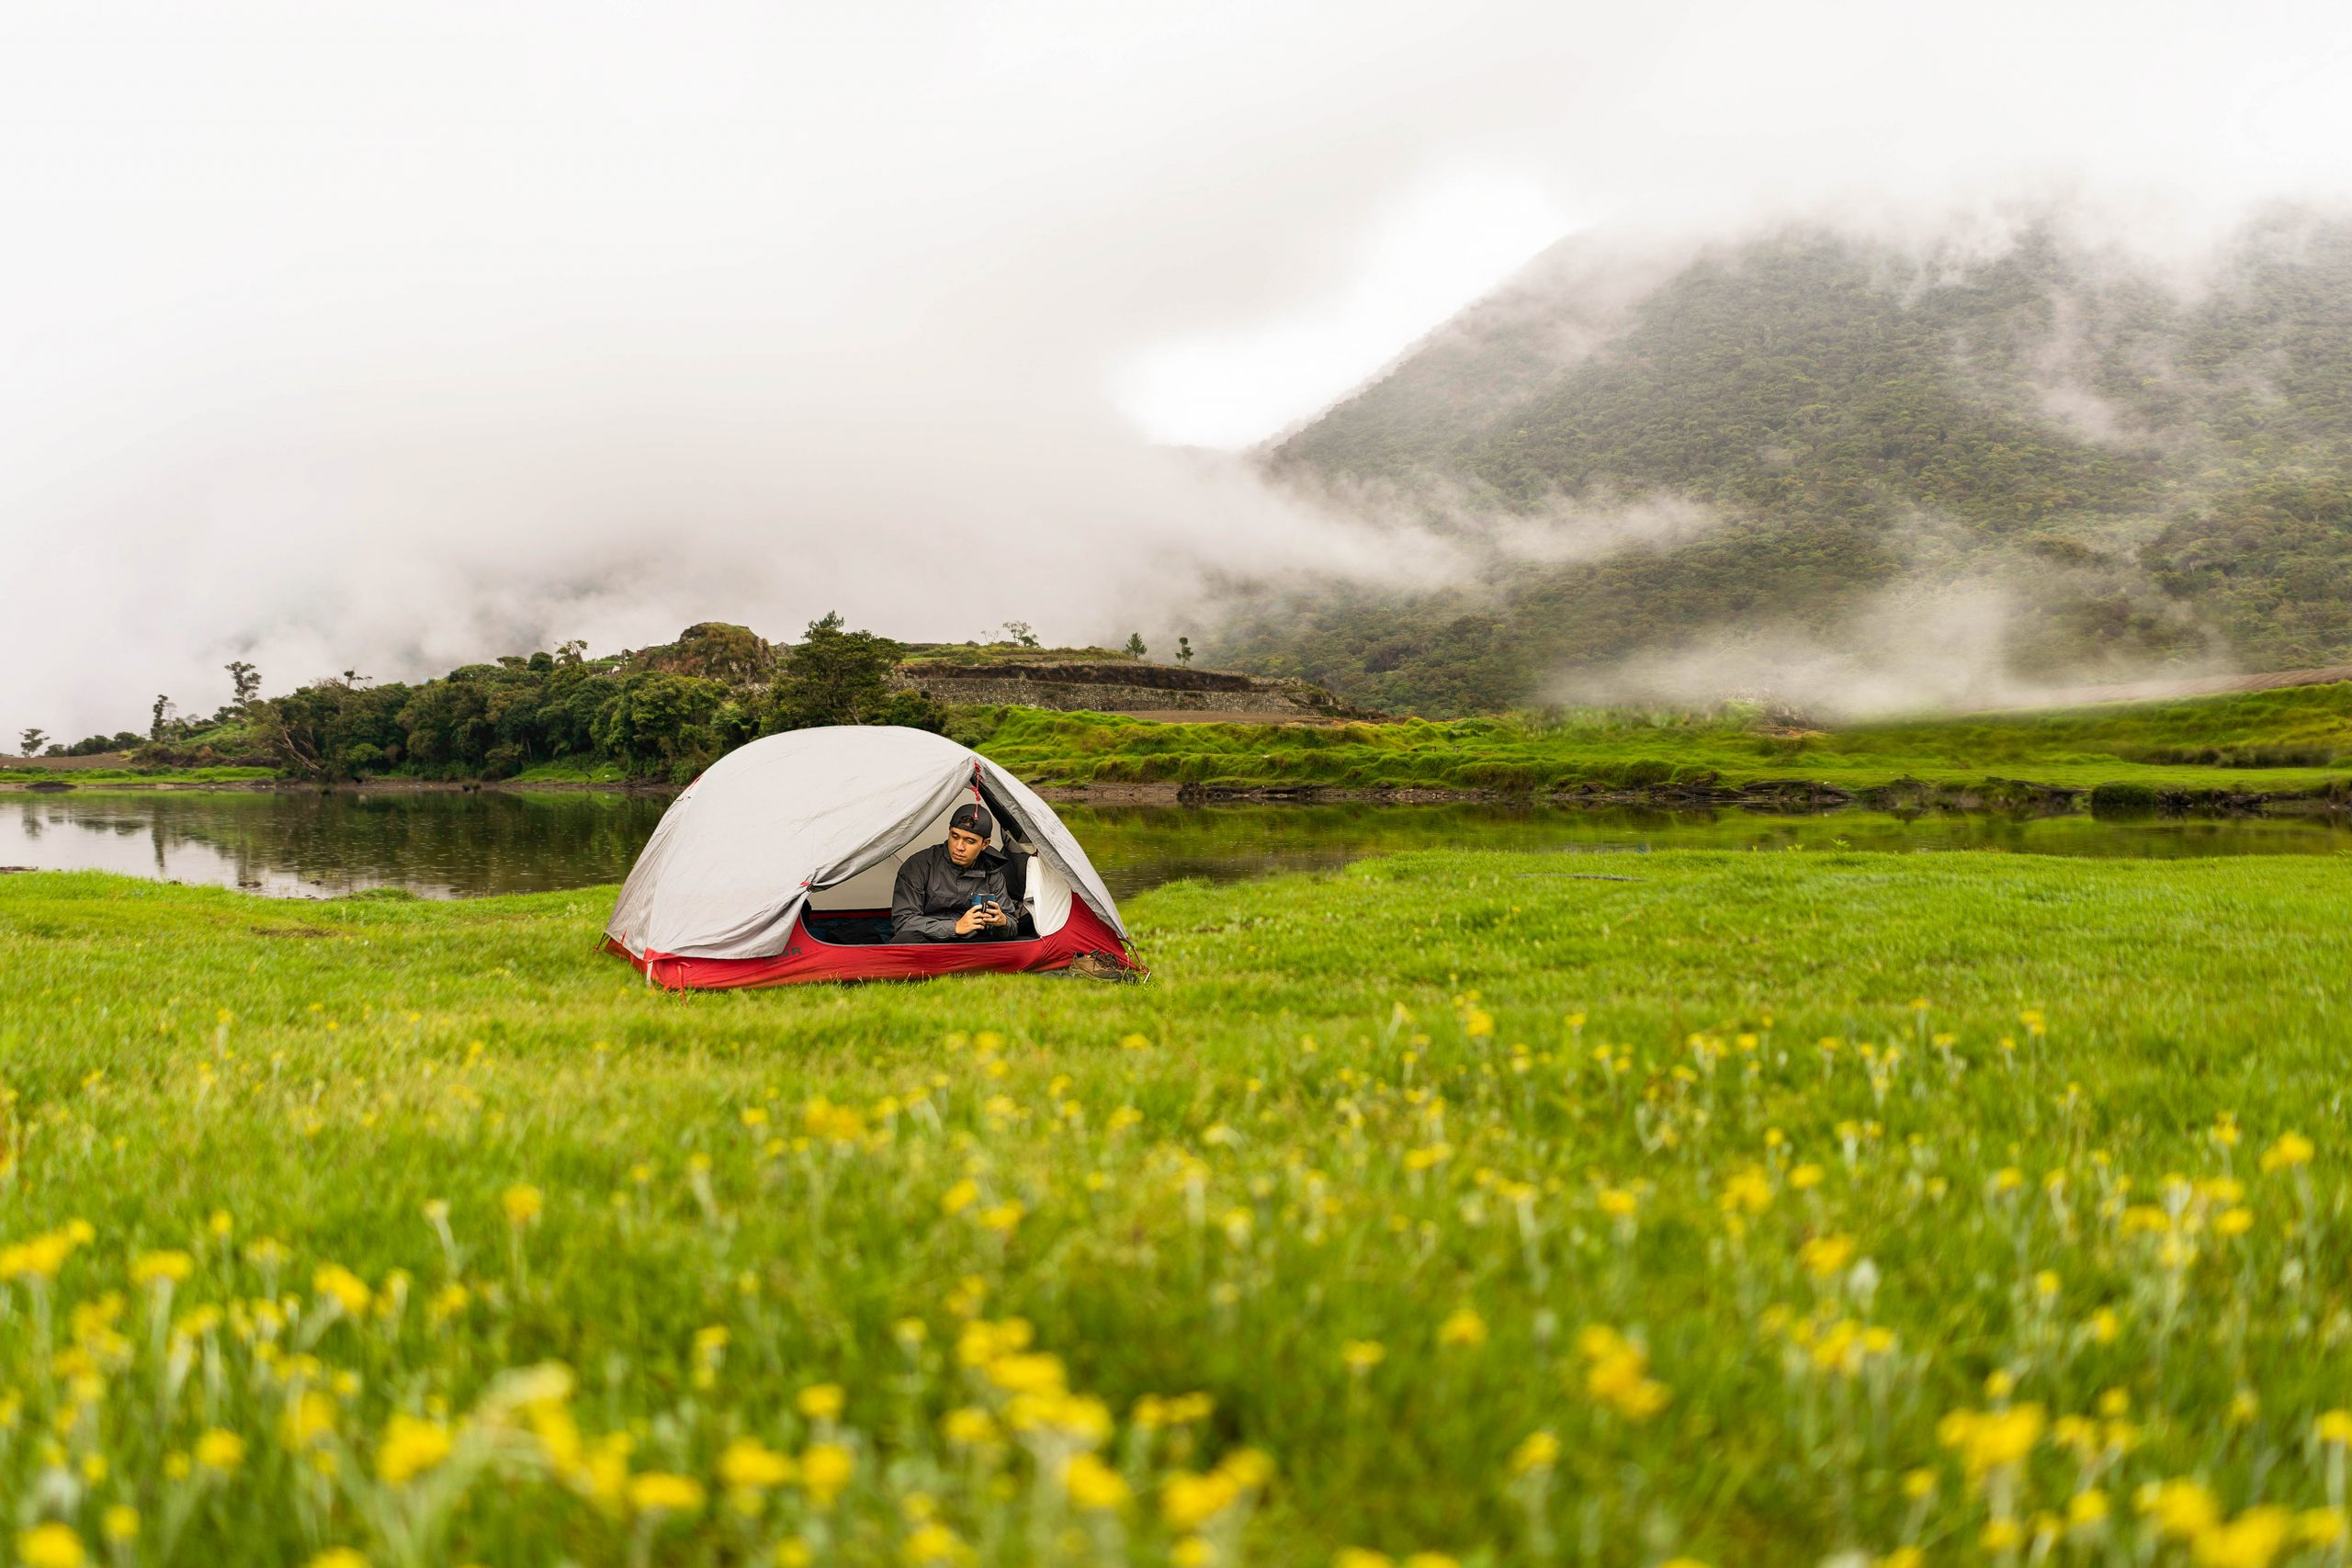 A camper's tent is pitched in the middle of a grassy field with yellow flowers, behind which rises a forested mountain (Mount Tabayoc, one of the highest mountains in the Philippines) covered in fog